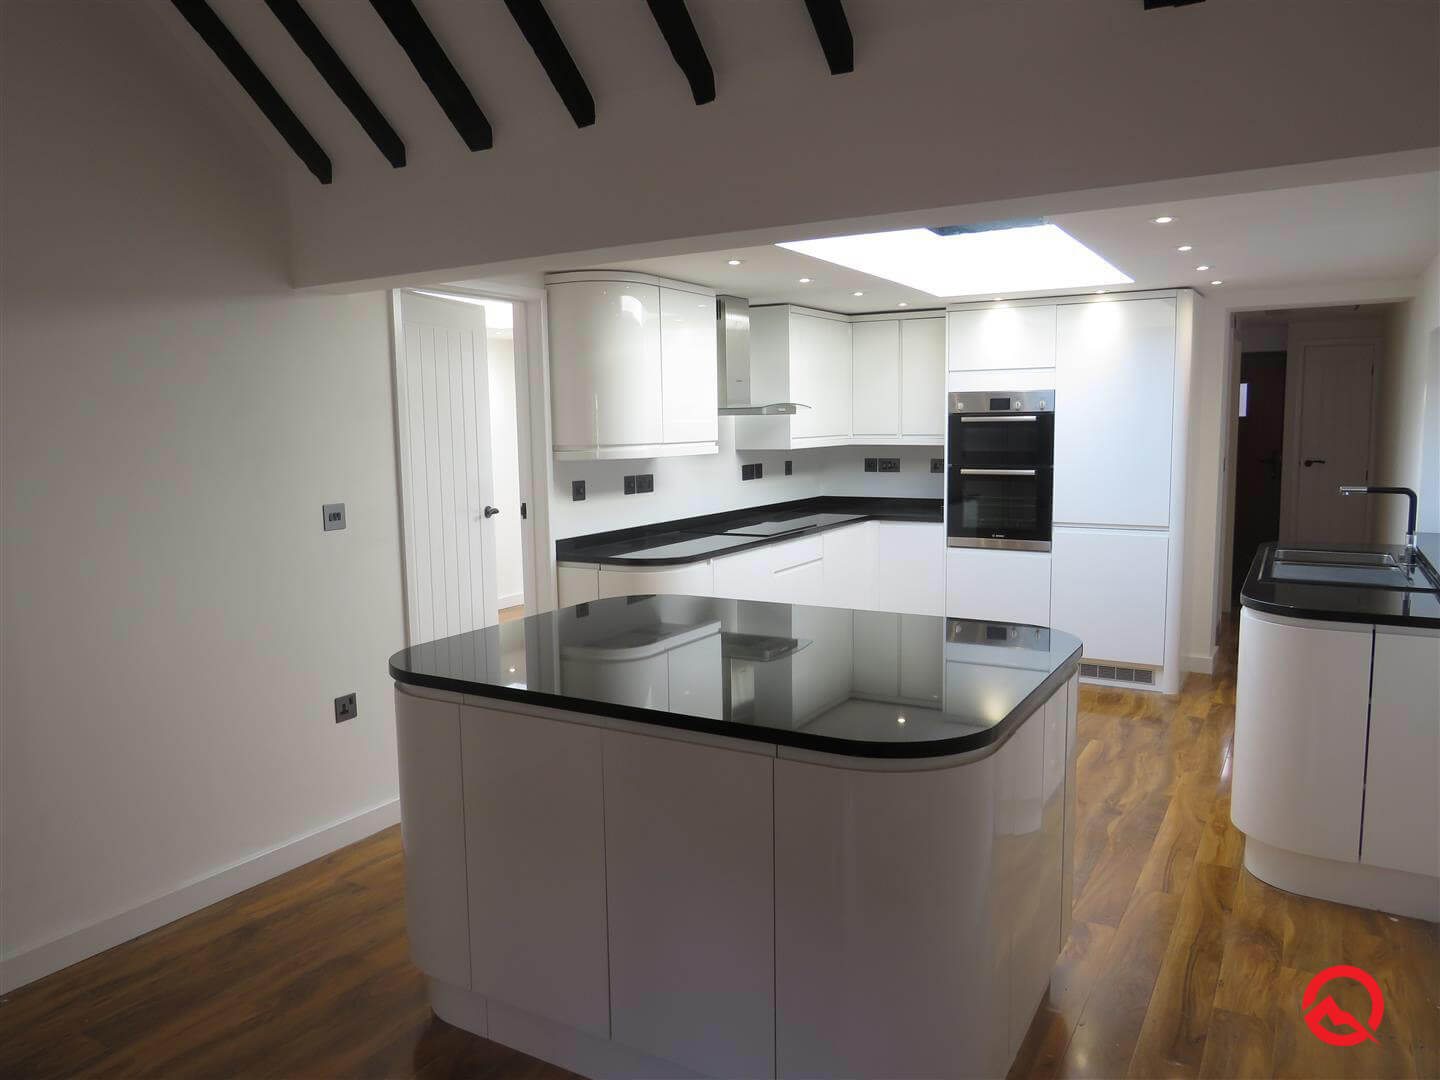 "granite quartz worktops <a href=""https://www.gqworktops.com/granite-quartz-worktops-wilmslow/"">Wilmslow</a>"